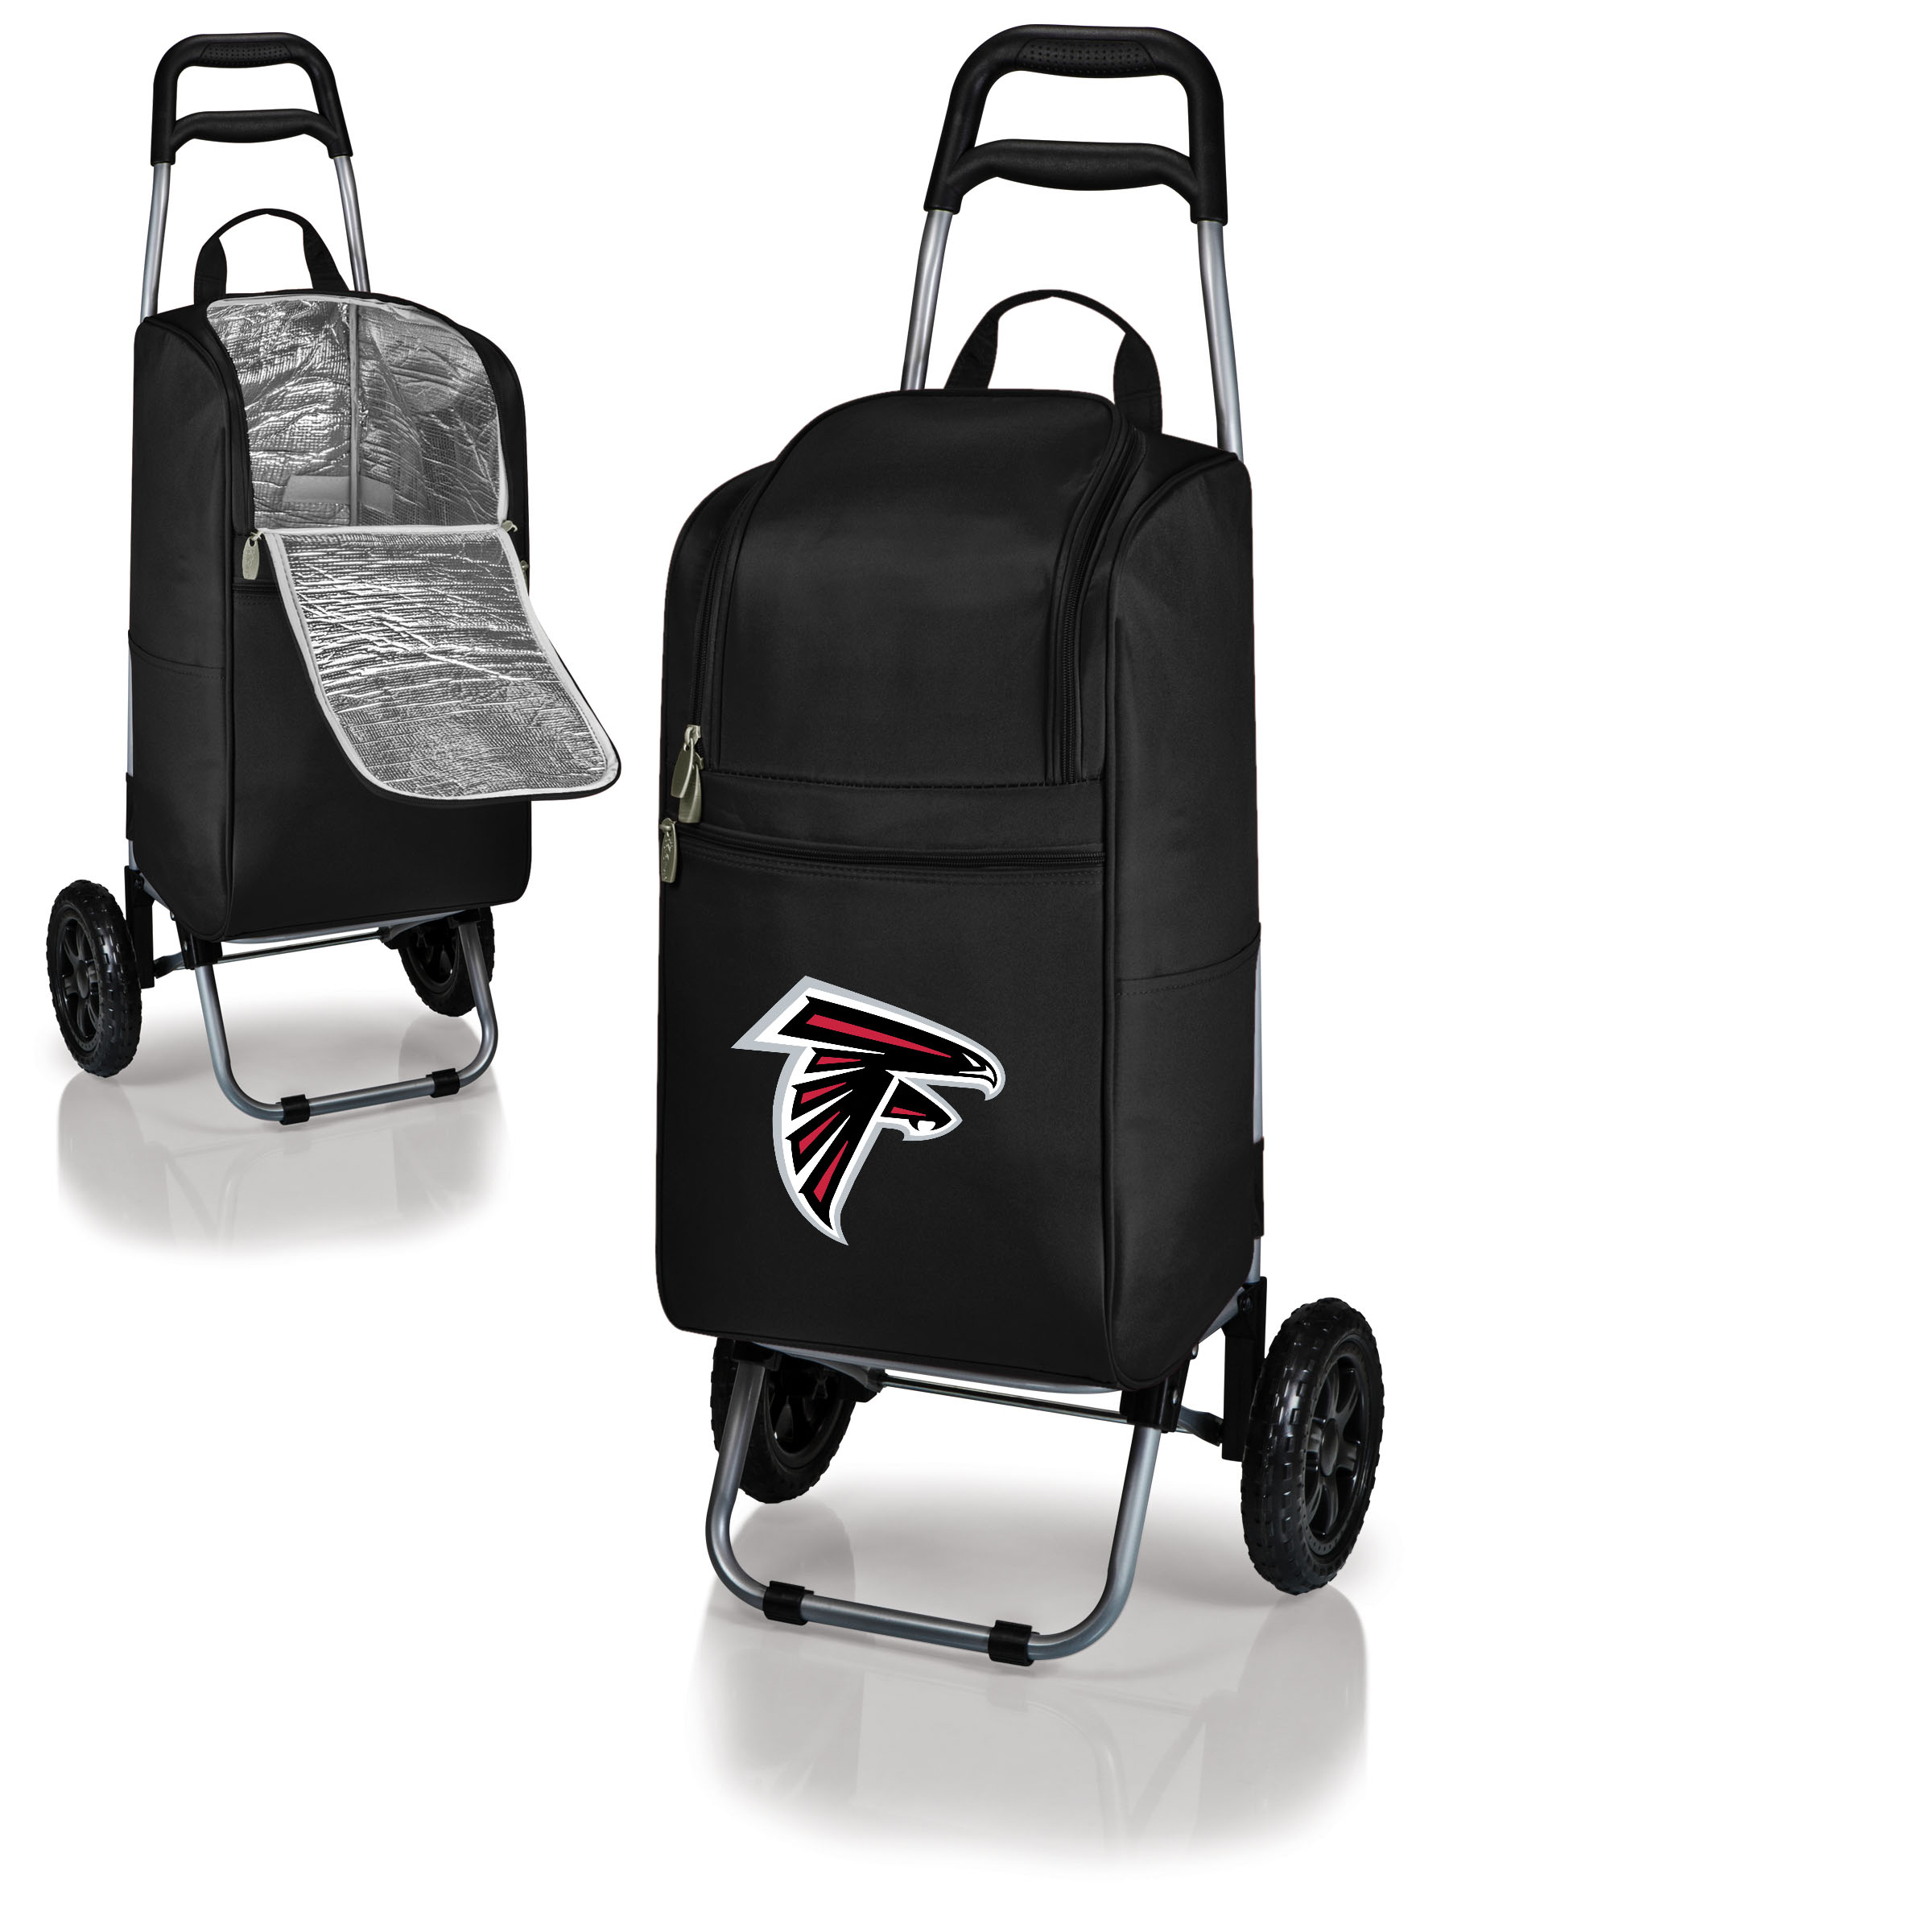 Atlanta Falcons Cart Cooler - Black - No Size